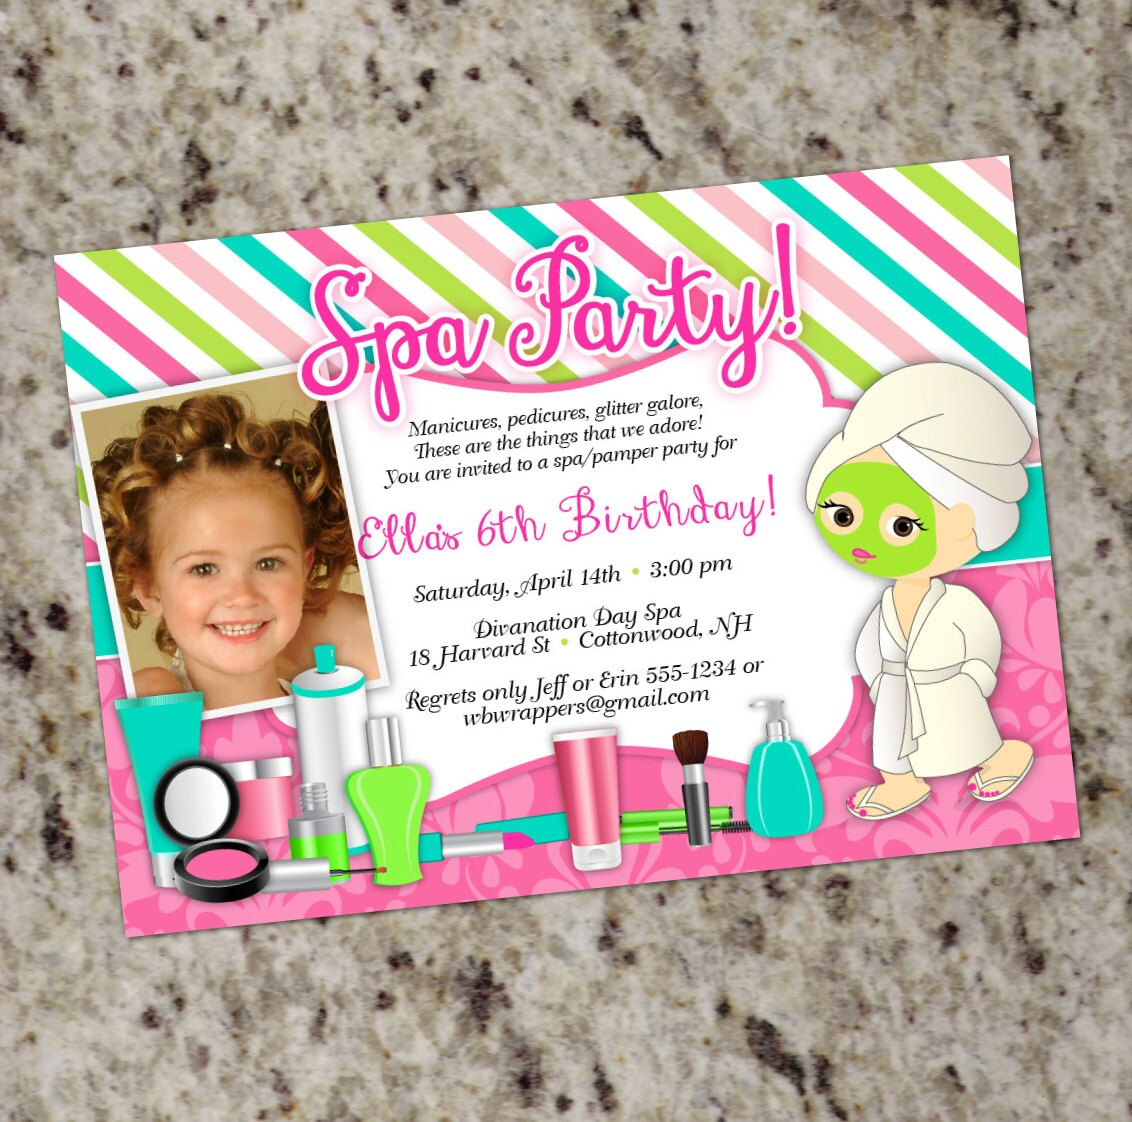 Pamper Birthday Party Invitations Spa Party Invitation